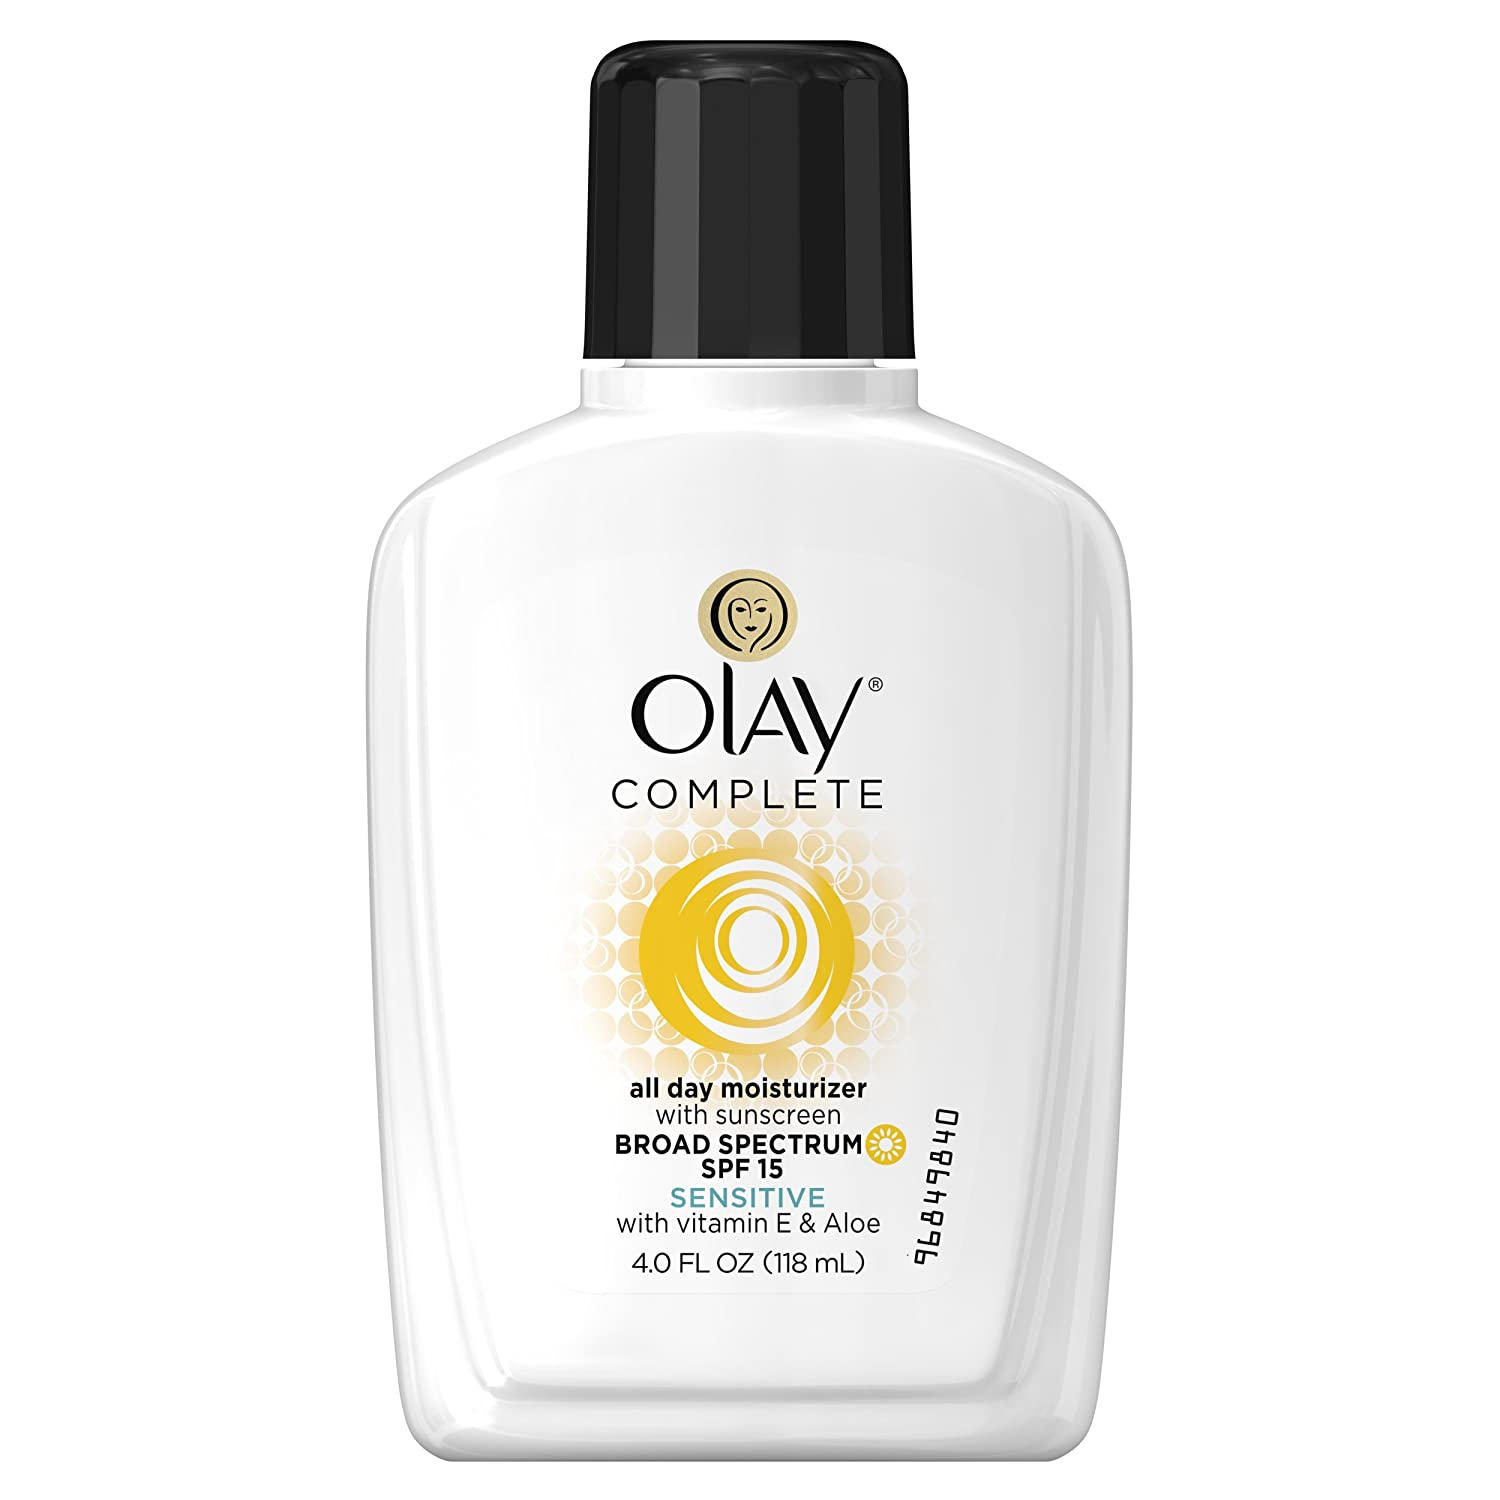 Face Moisturizer by Olay, Complete All Day Moisturizer With Sunscreen Broad Spectrum SPF 15 - Sensitive, 4 fl. Oz, 1 unit